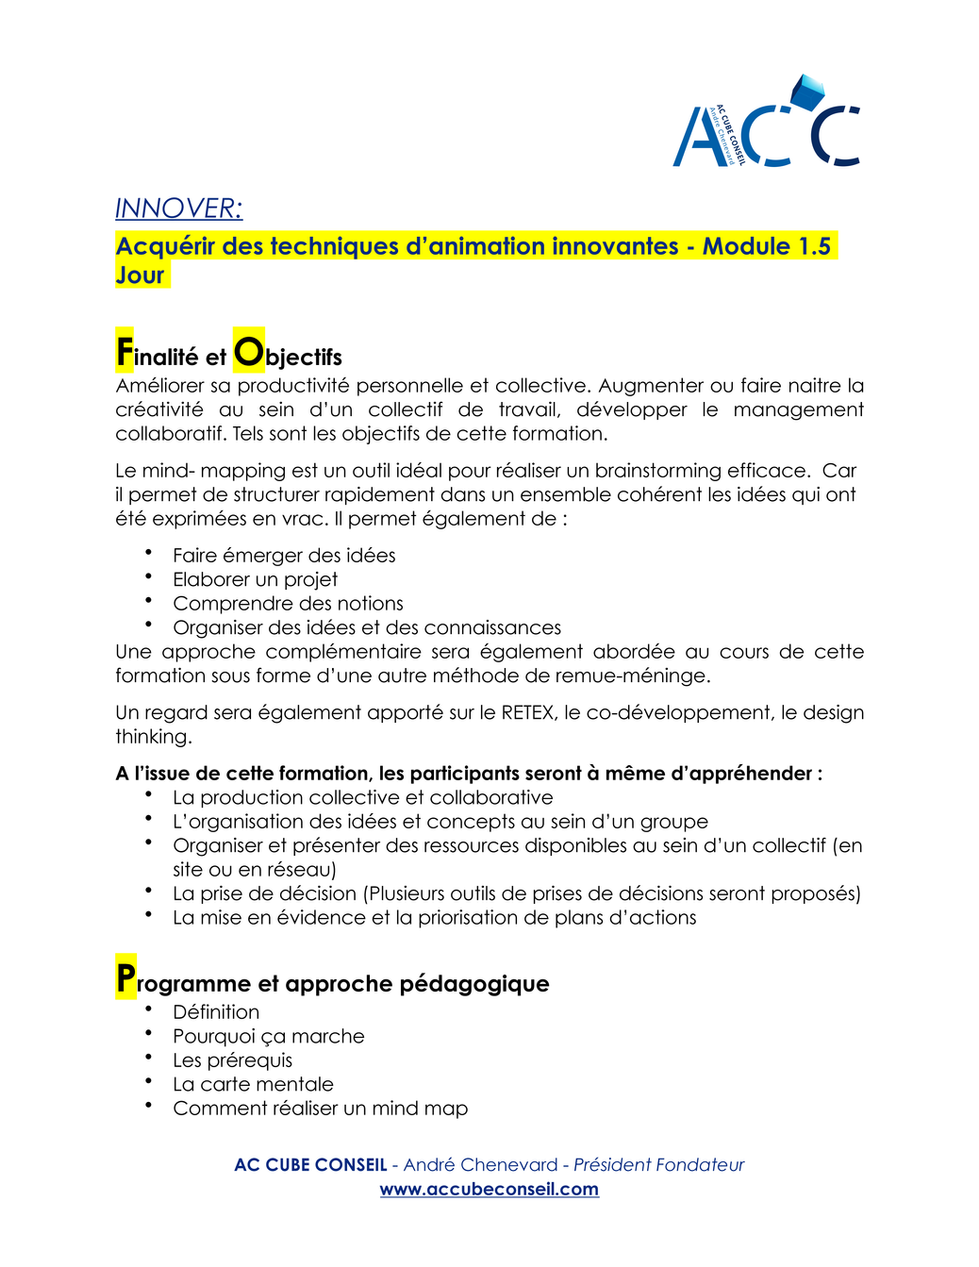 AC CUBE CONSEIL - INNOVER_Page_07.png